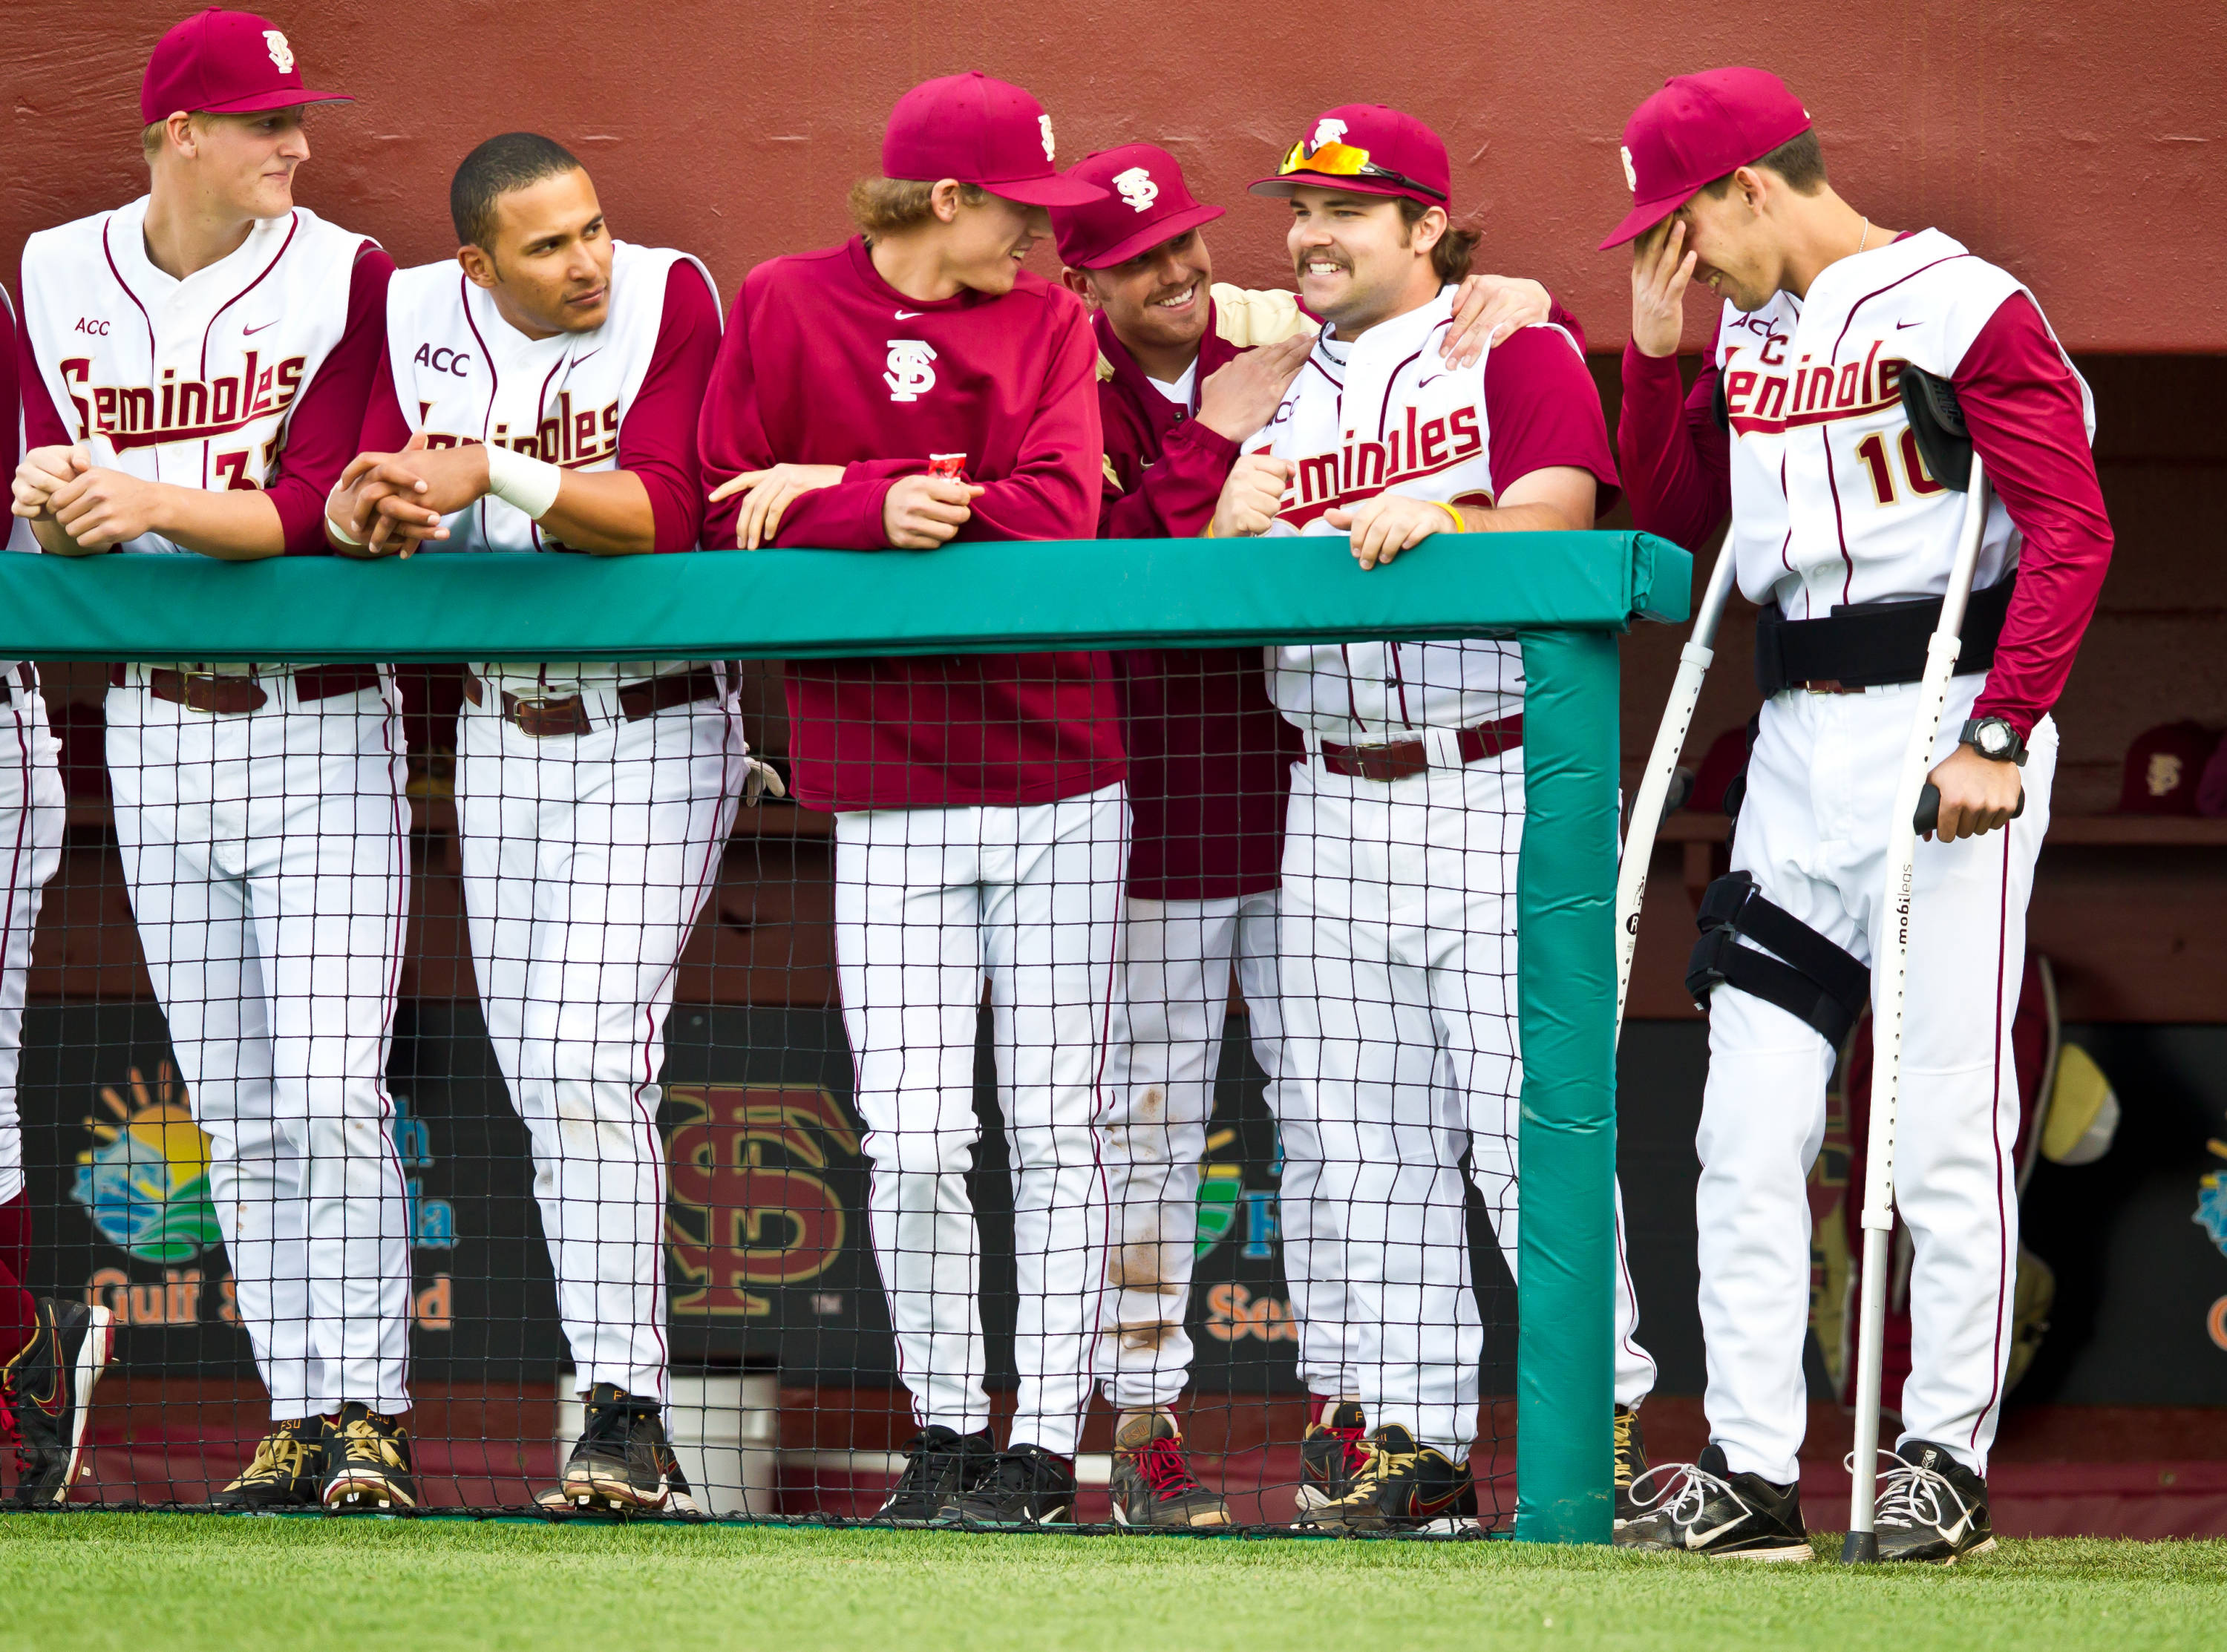 The Seminoles congratulate Scott Sitz on making his first collegiate plate appearance on Wednesday.